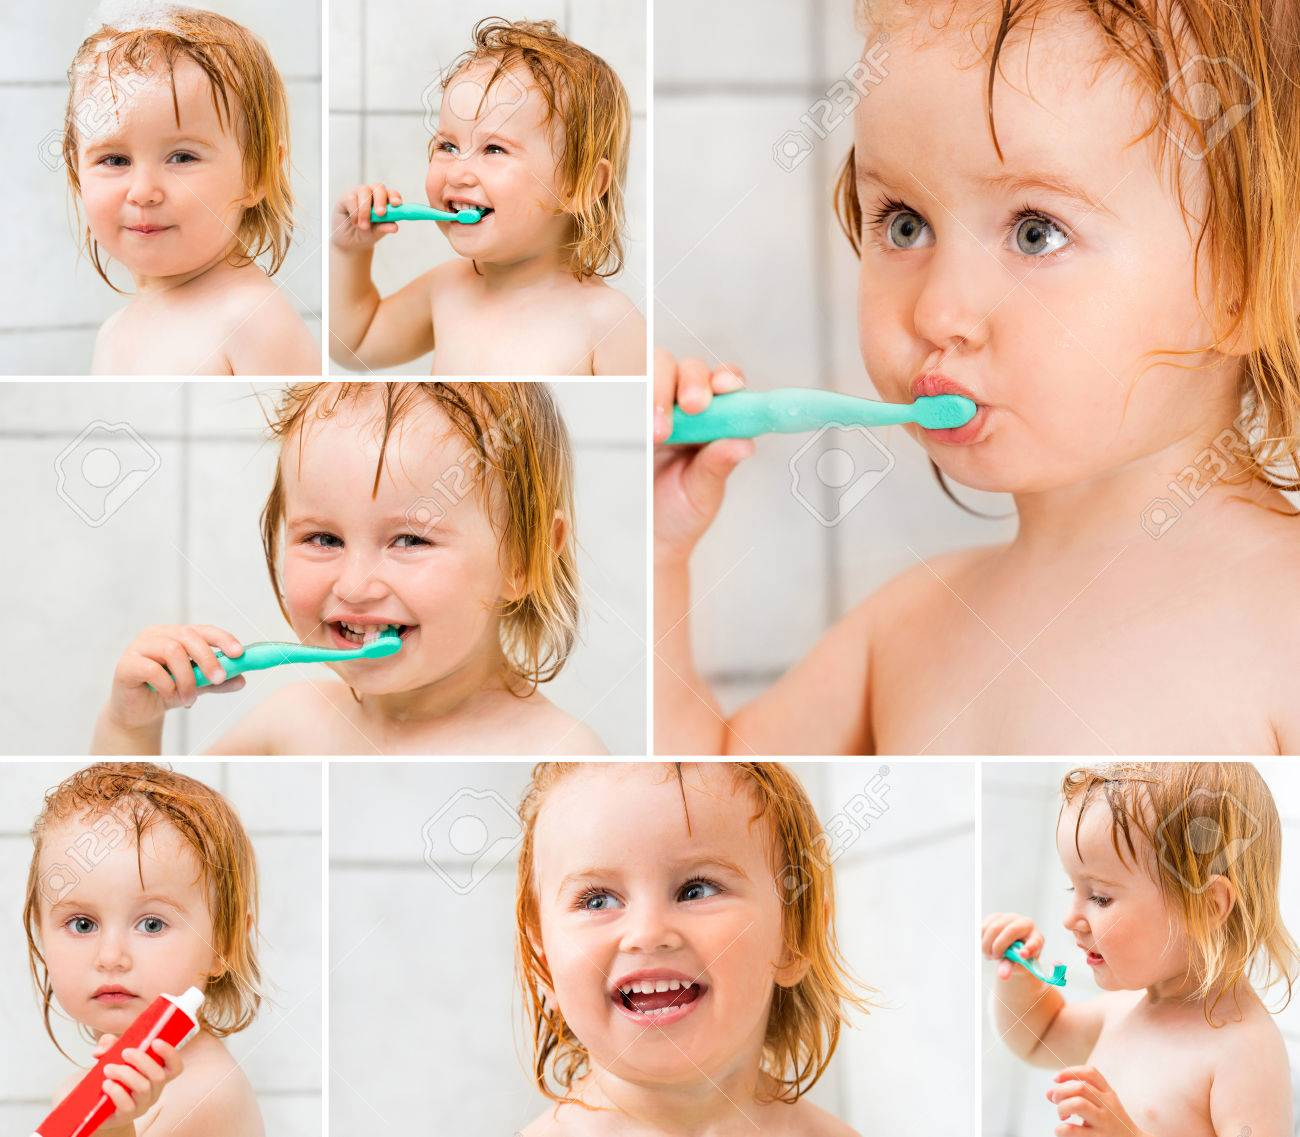 photo collage dental hygiene cute baby brushing teeth in bathroom stock photo 39649370